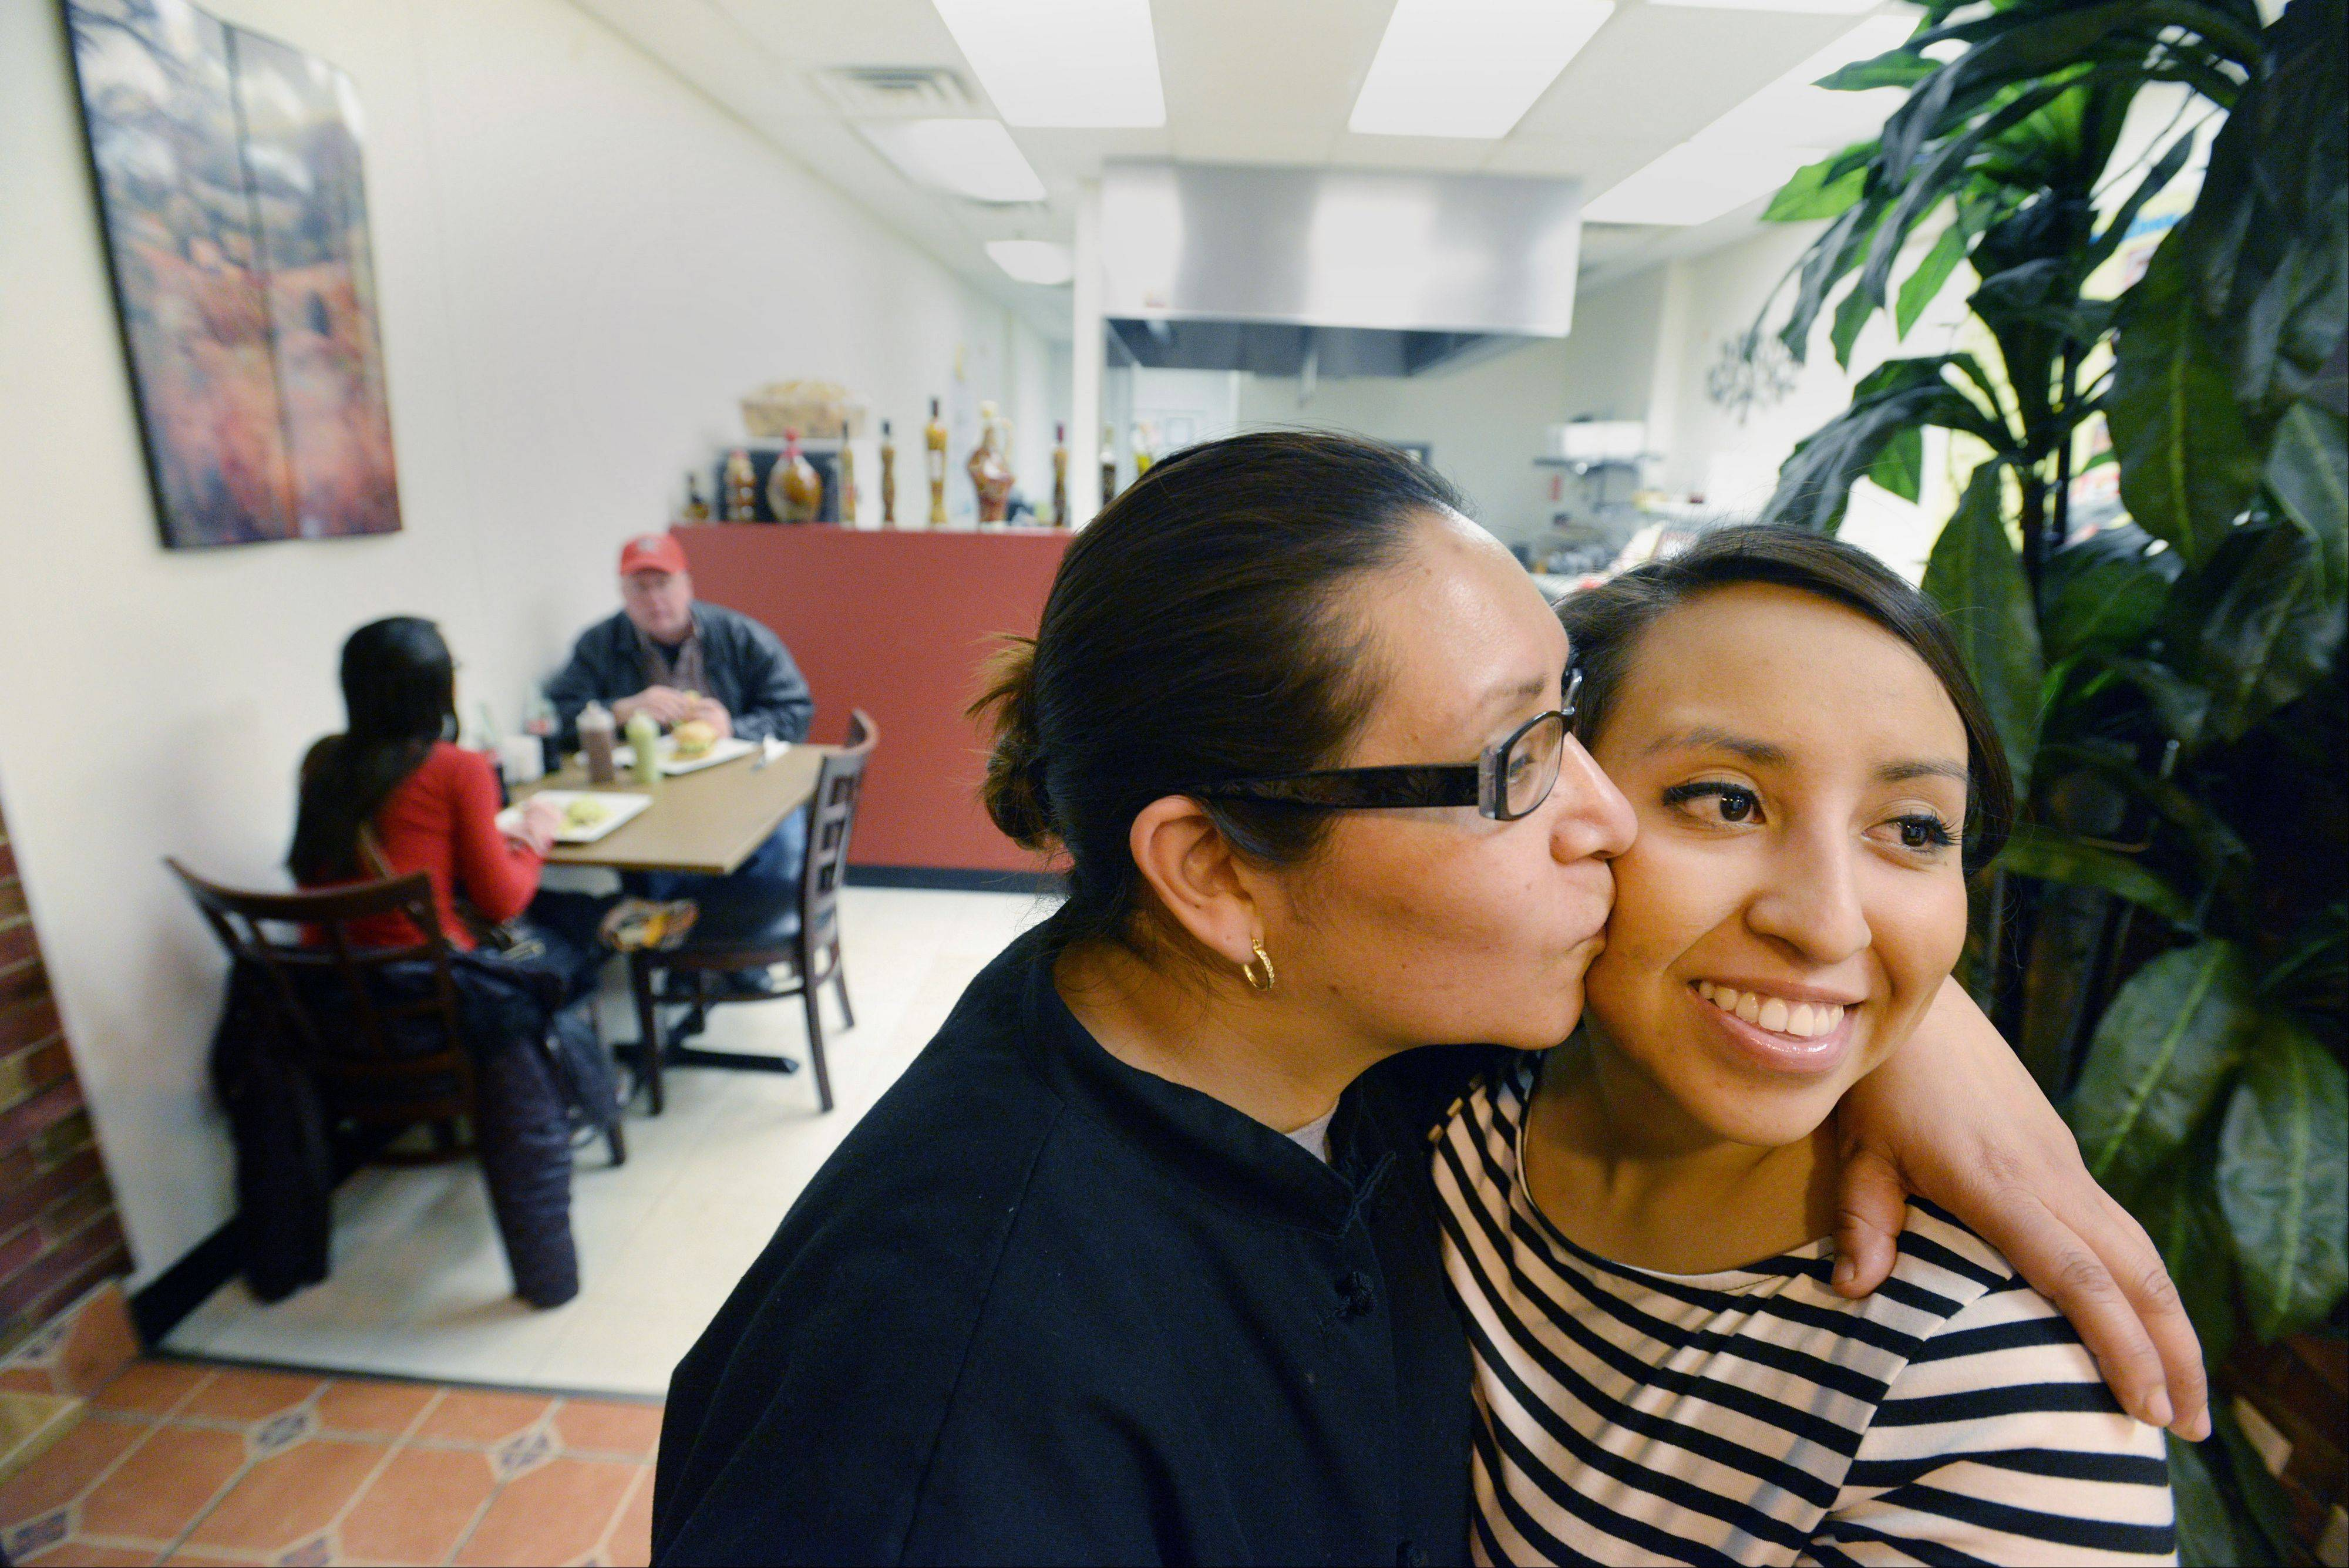 Maribel Molina Cortes hugs and kisses her daughter Mary Ortega during a recent visit. Mary often comes to help her mother run the business. She runs the front so her mother can cook.